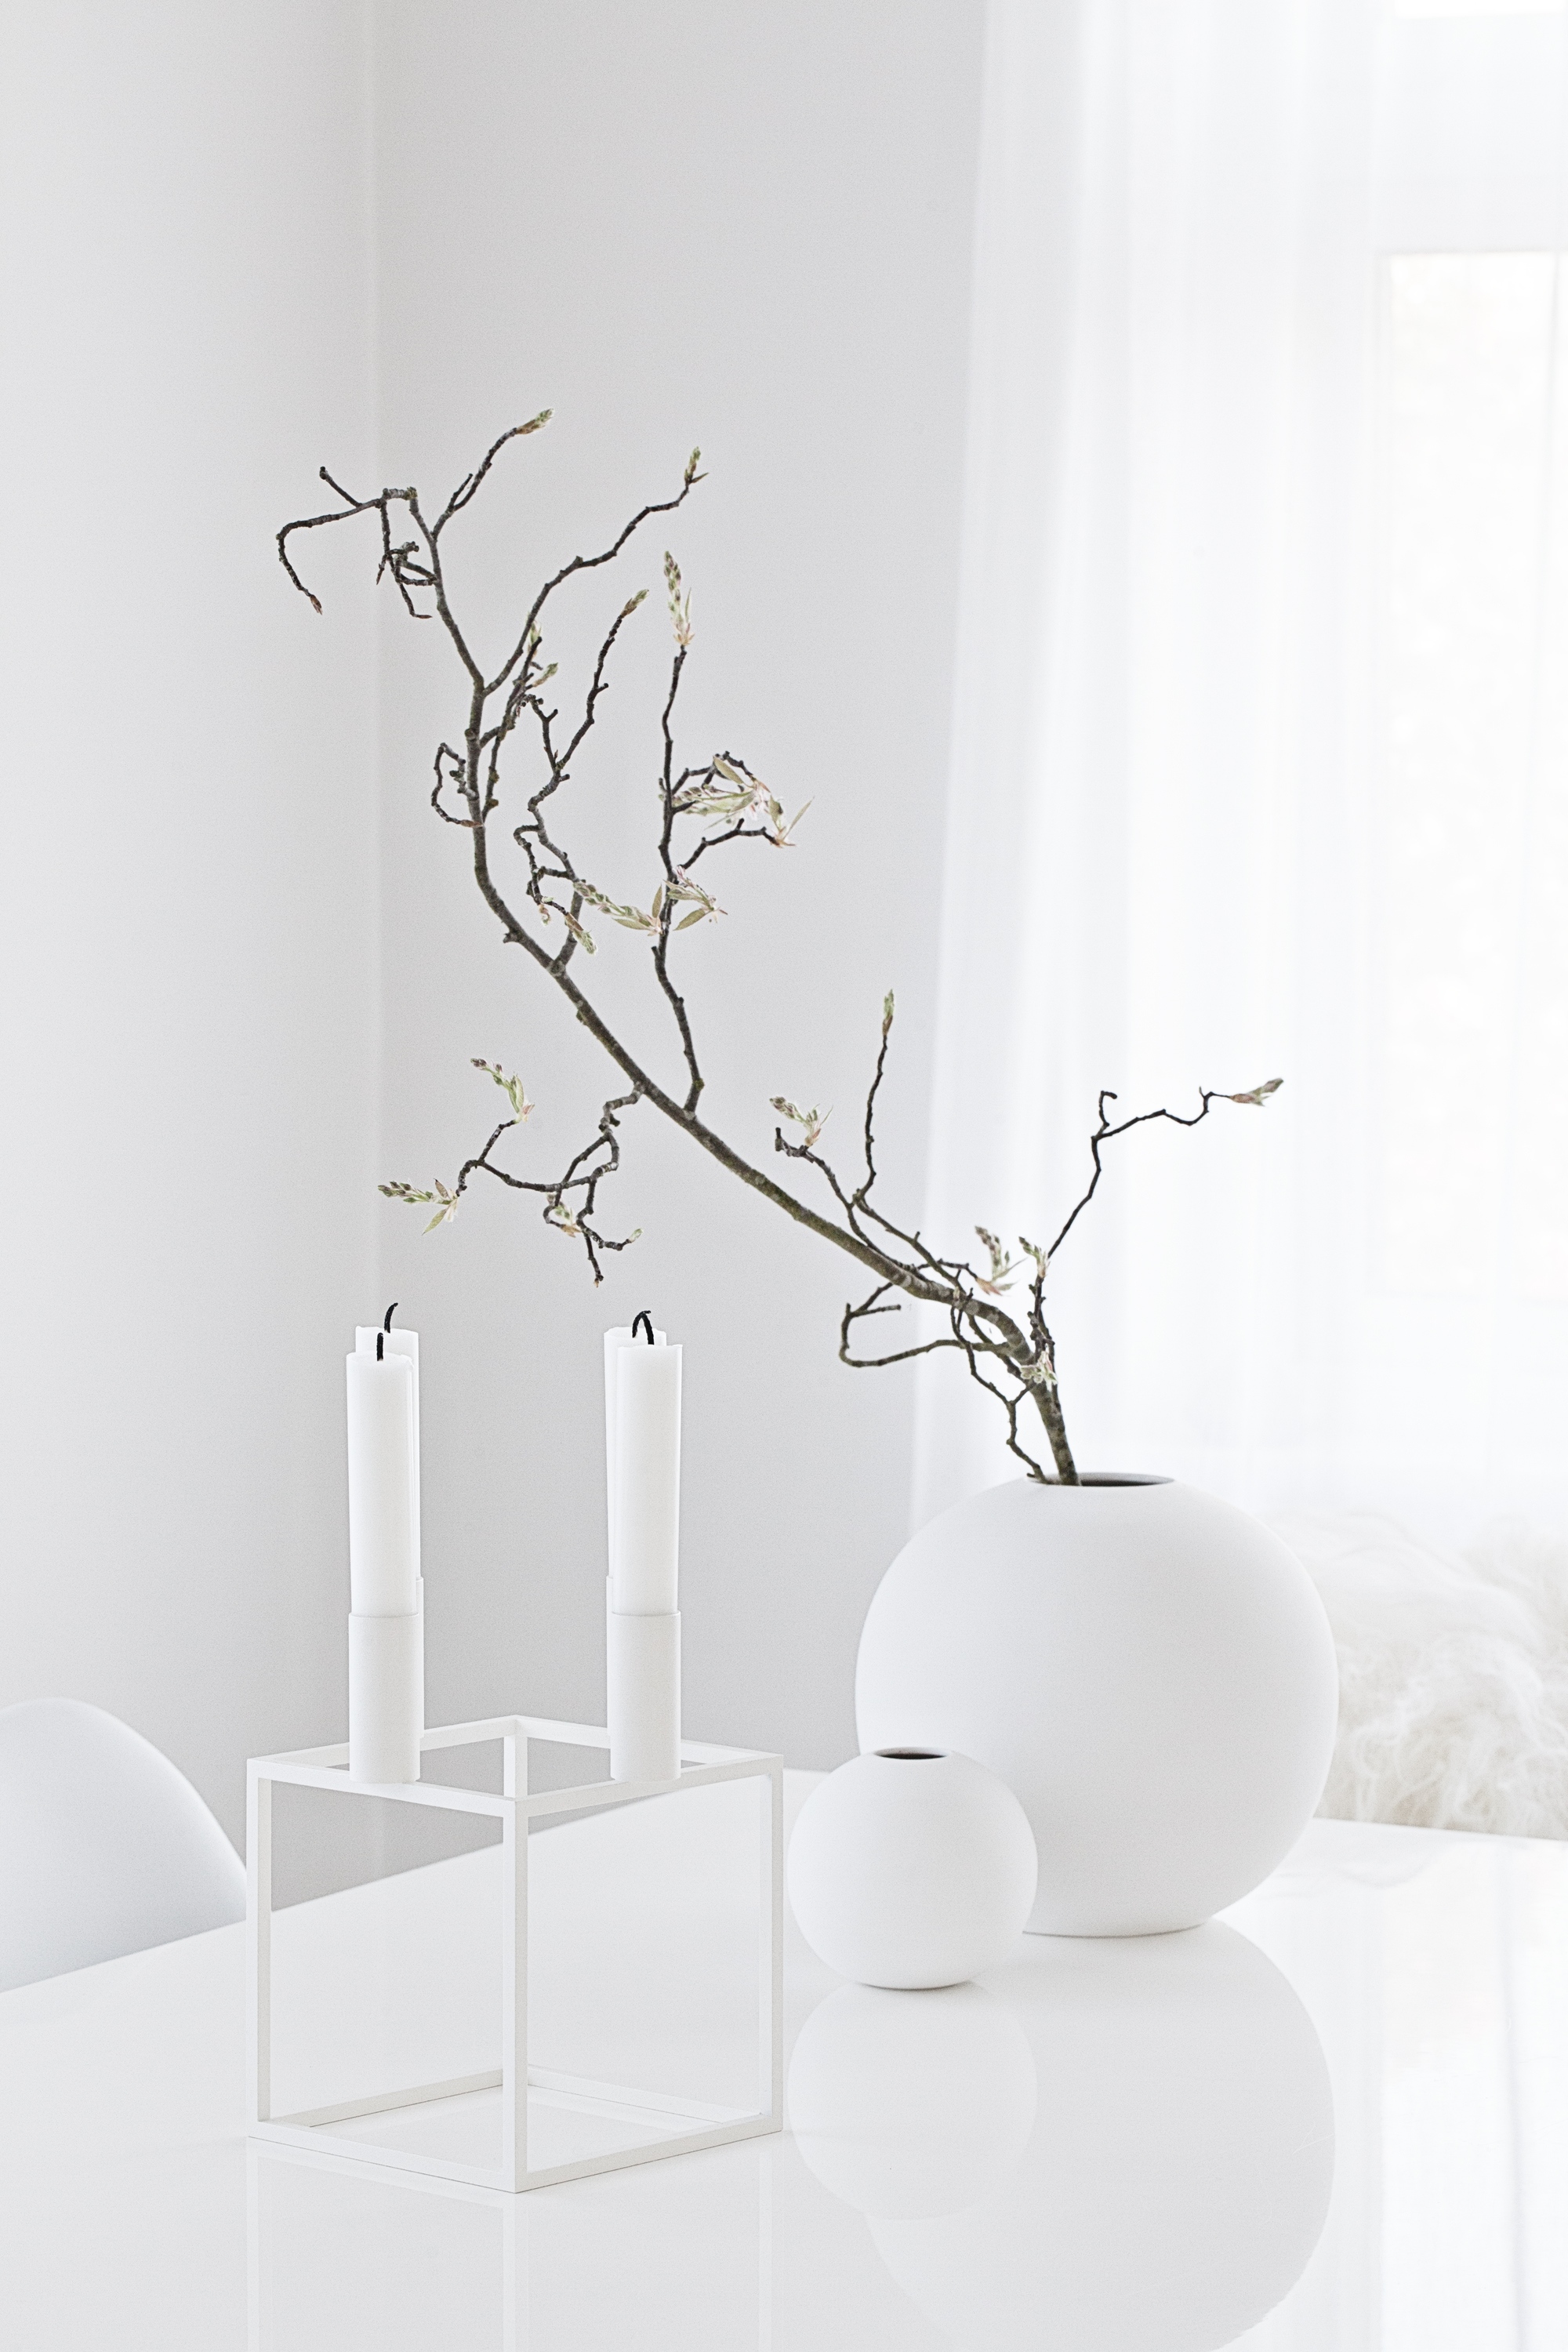 White Kubus 4 Candle Holder from  Made Modern  | White Round Vases from  Cooee  and for all the UK fans, they will soon be available from Made Modern!